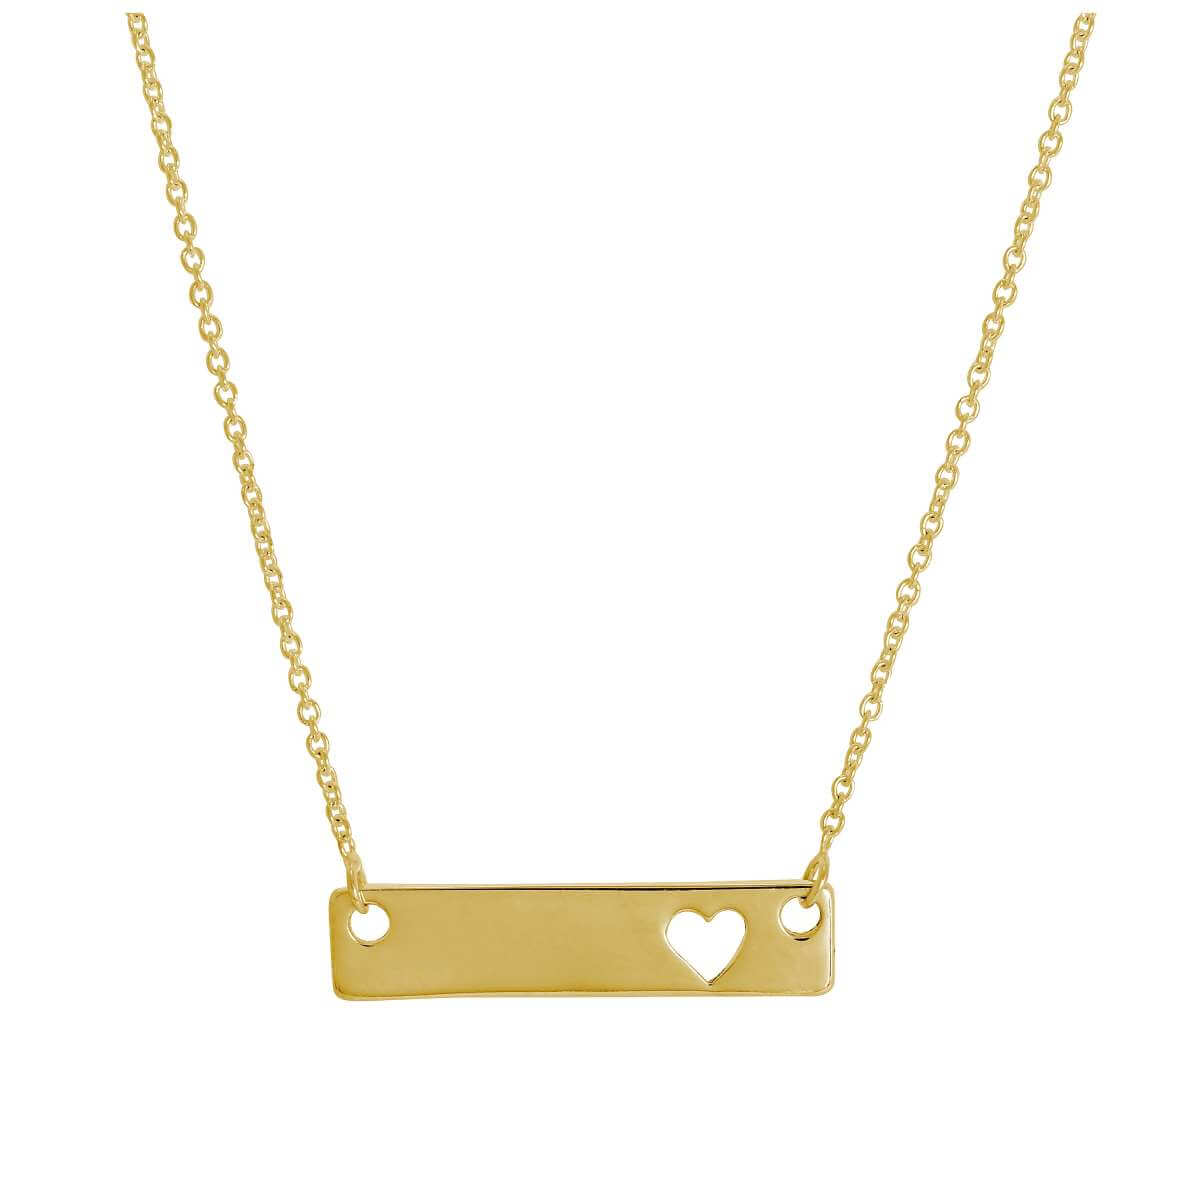 Gold Plated Sterling Silver Engravable Heart Bar Necklace 17 Inch